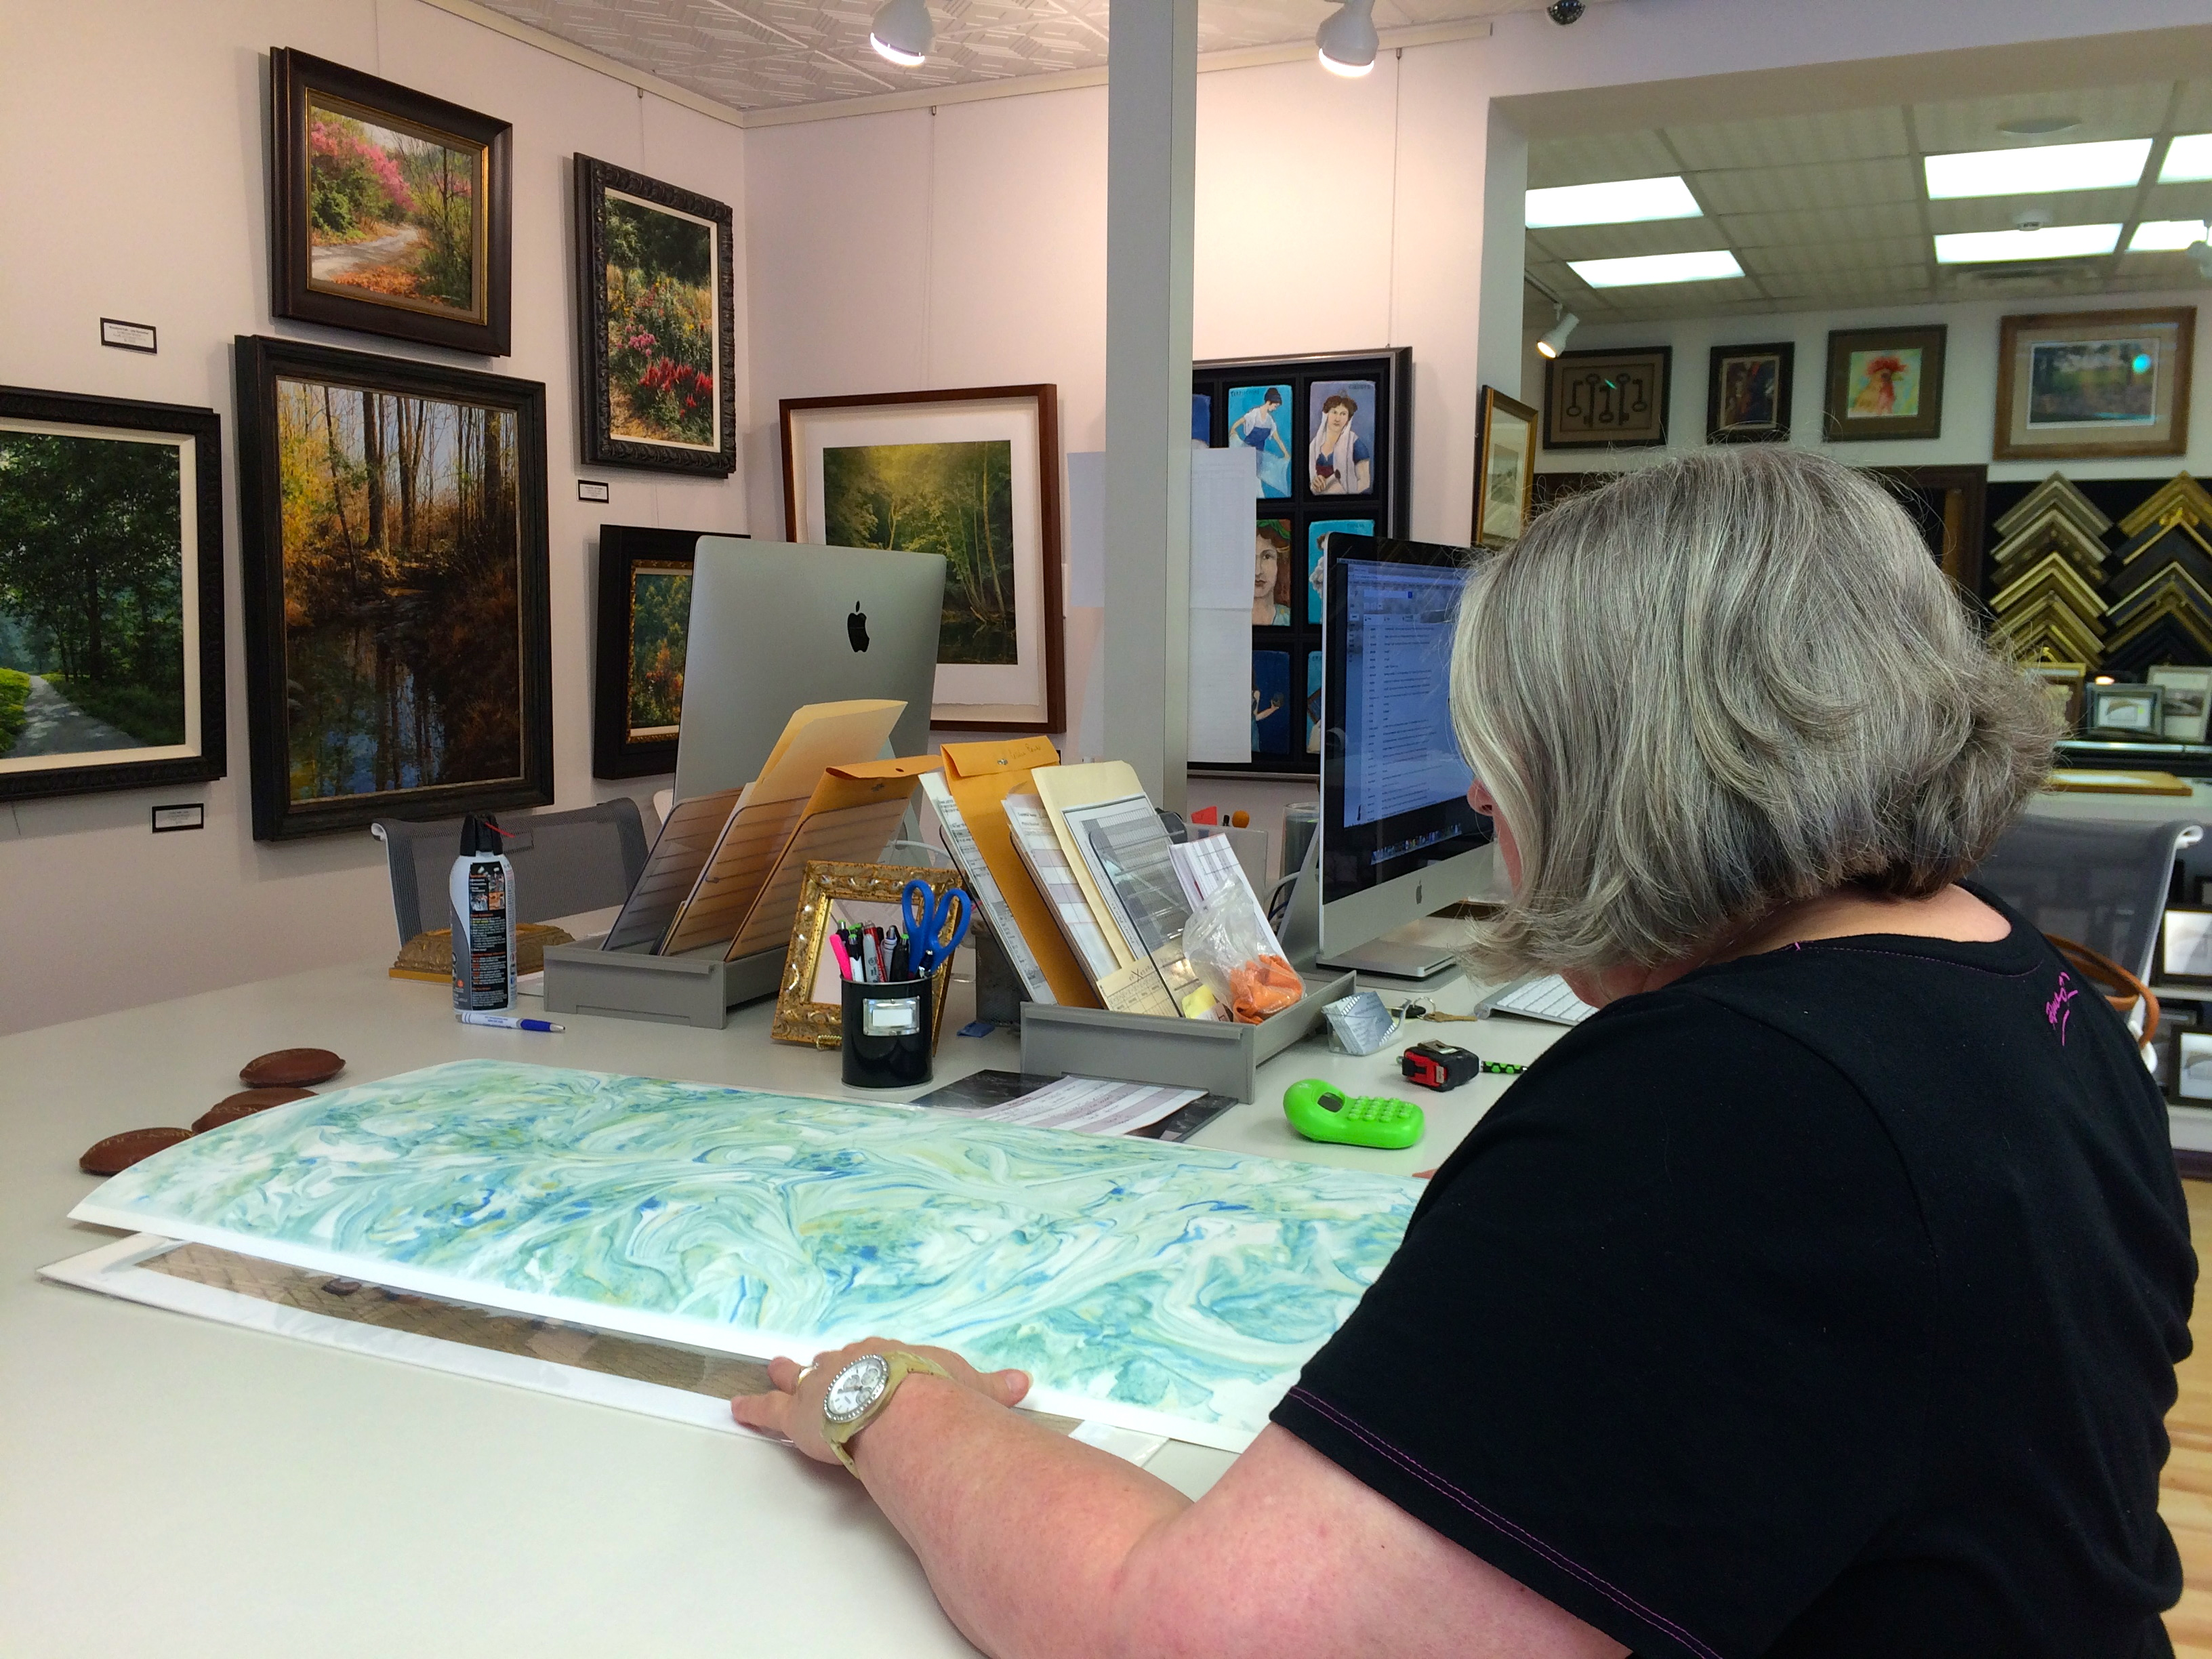 Letha Drury works with an original piece of art in preparation for framing. (Photo by Sydney Bland)